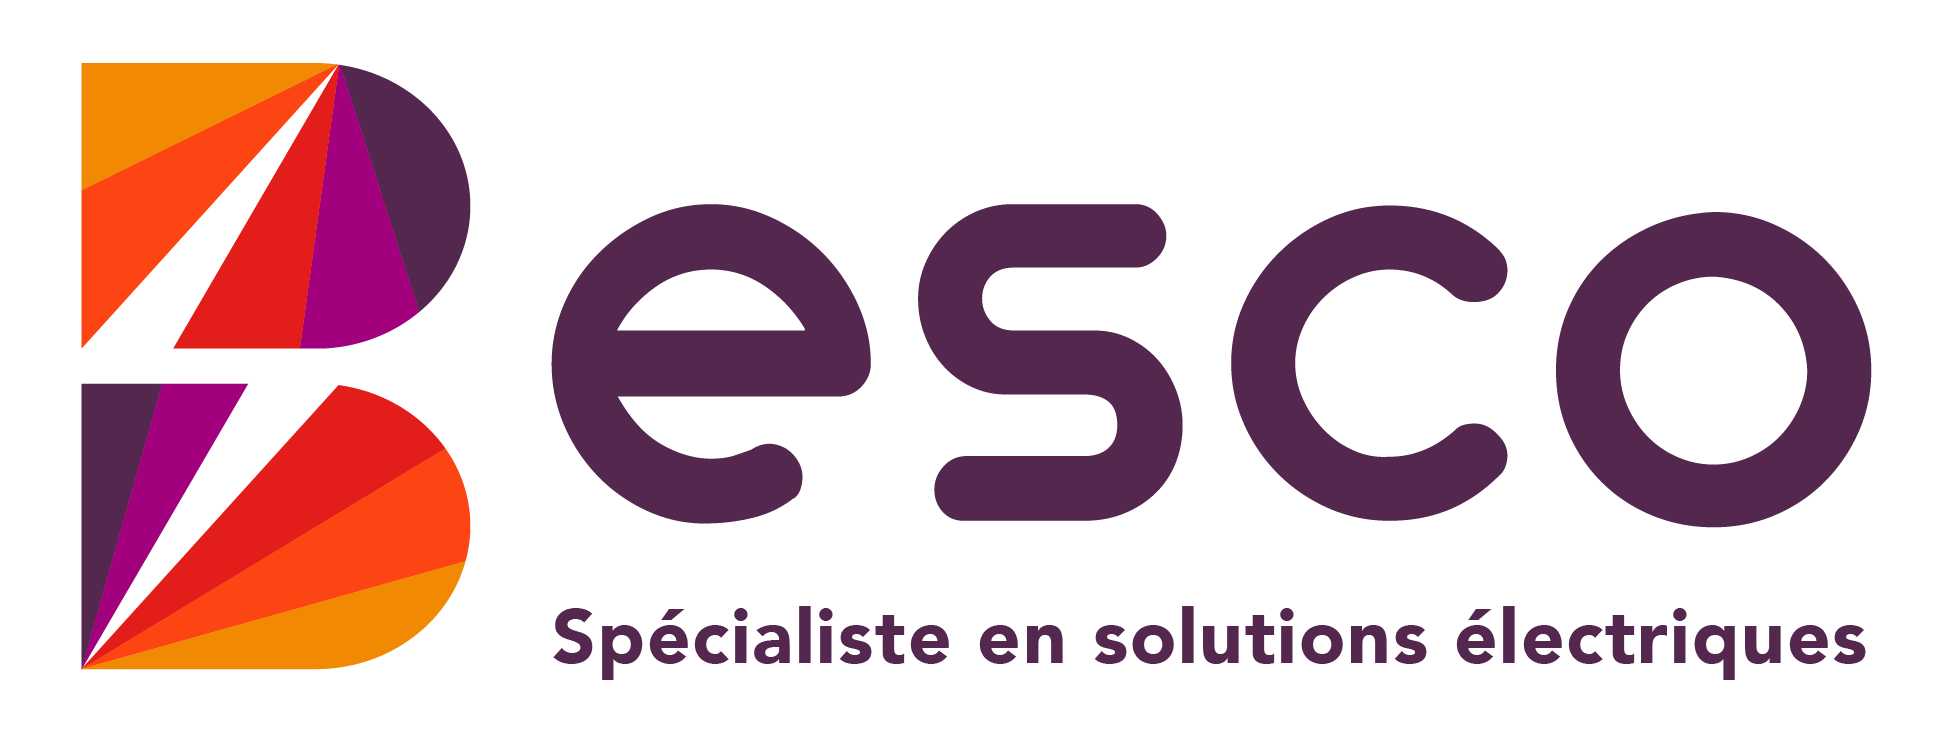 Logo_Besco_Juin2017_FINAL-01